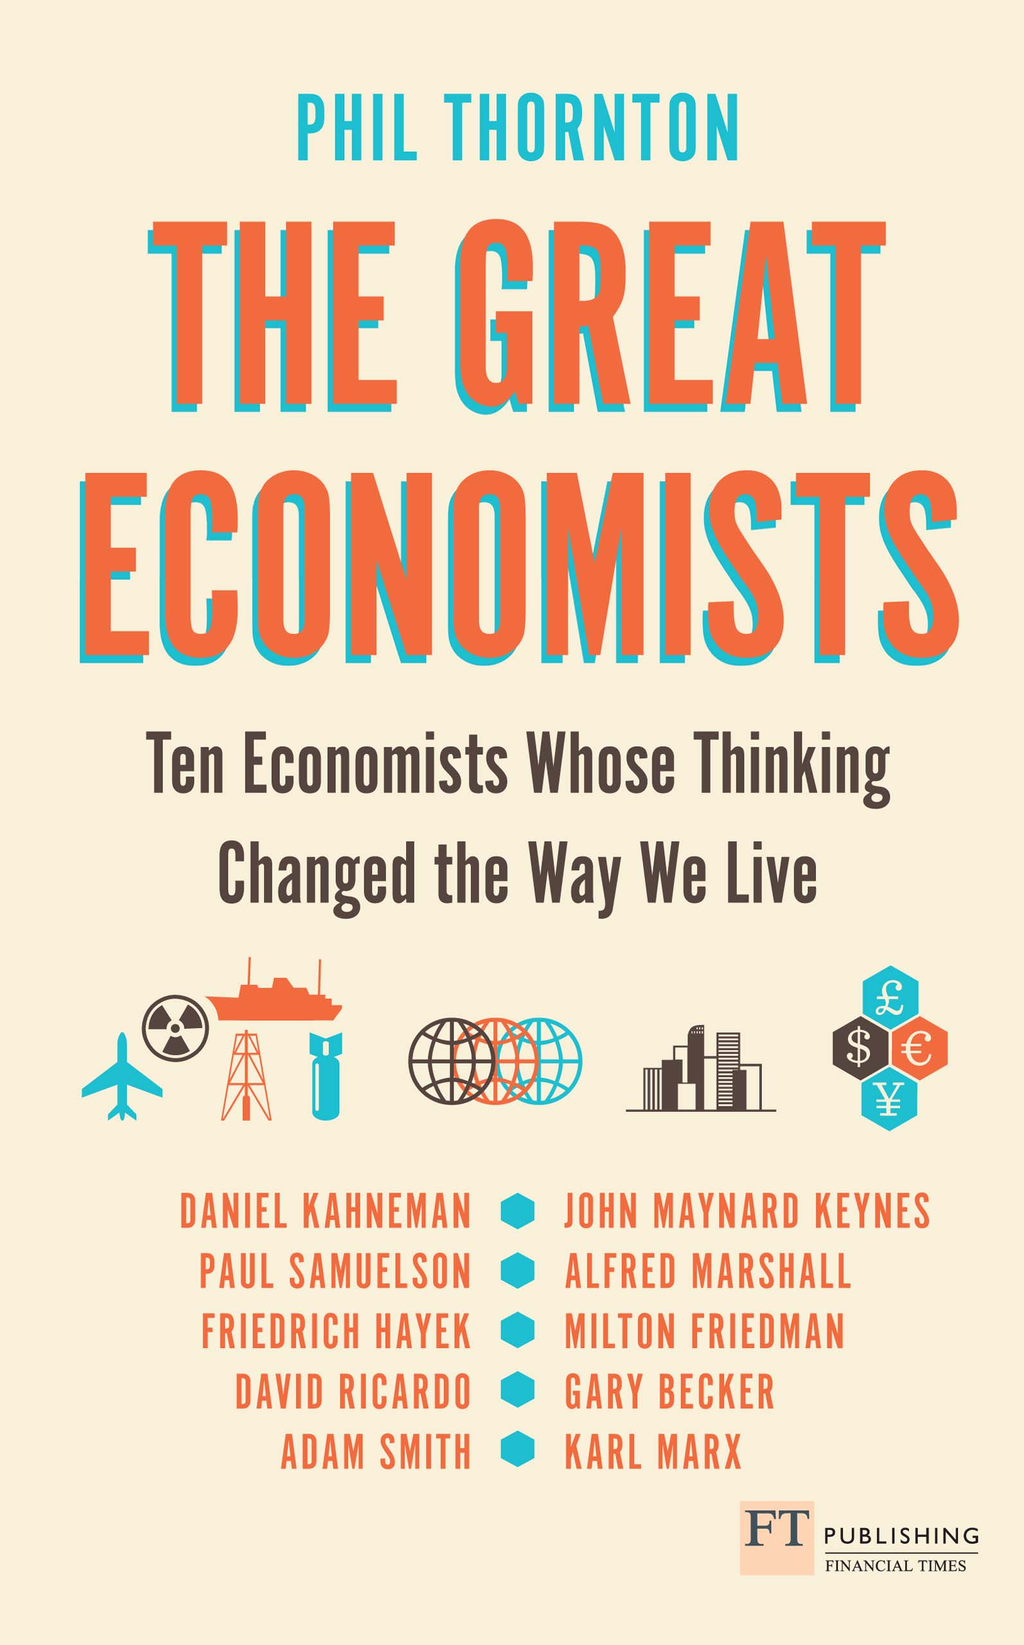 The Great Economists Ten Economists whose thinking changed the way we live